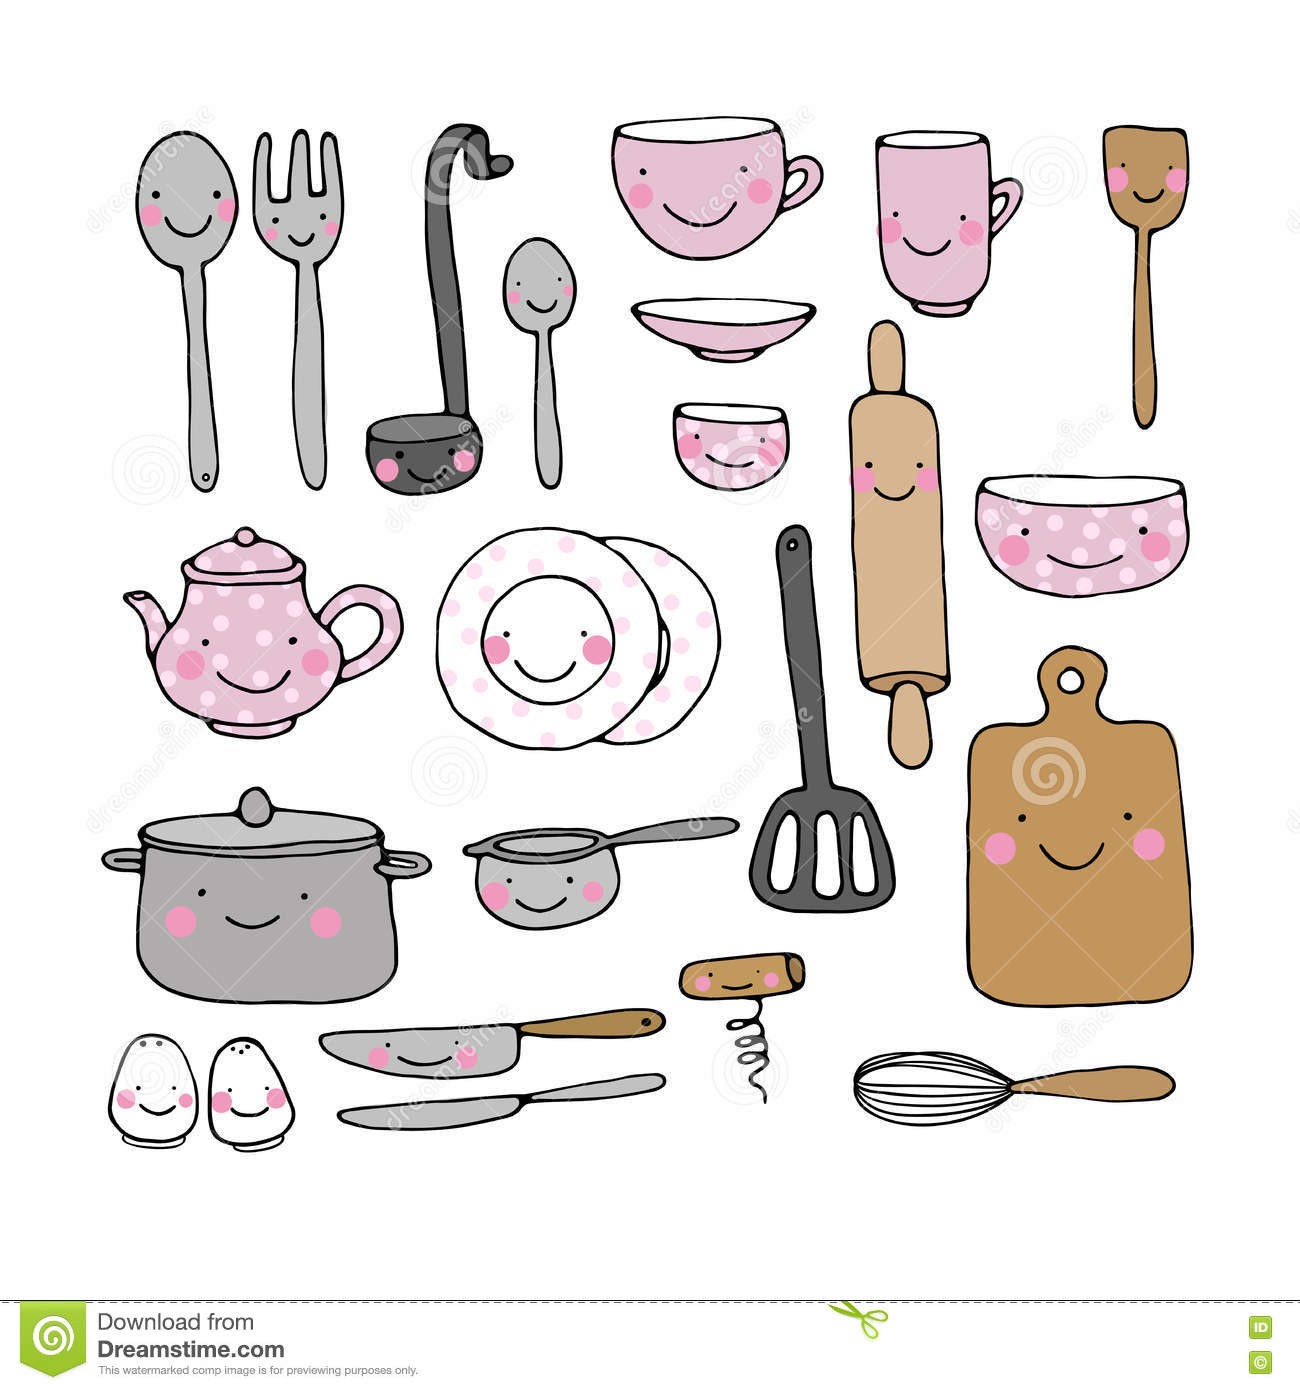 Whisk cartoons illustrations vector stock images 1188 for Kitchen set drawing